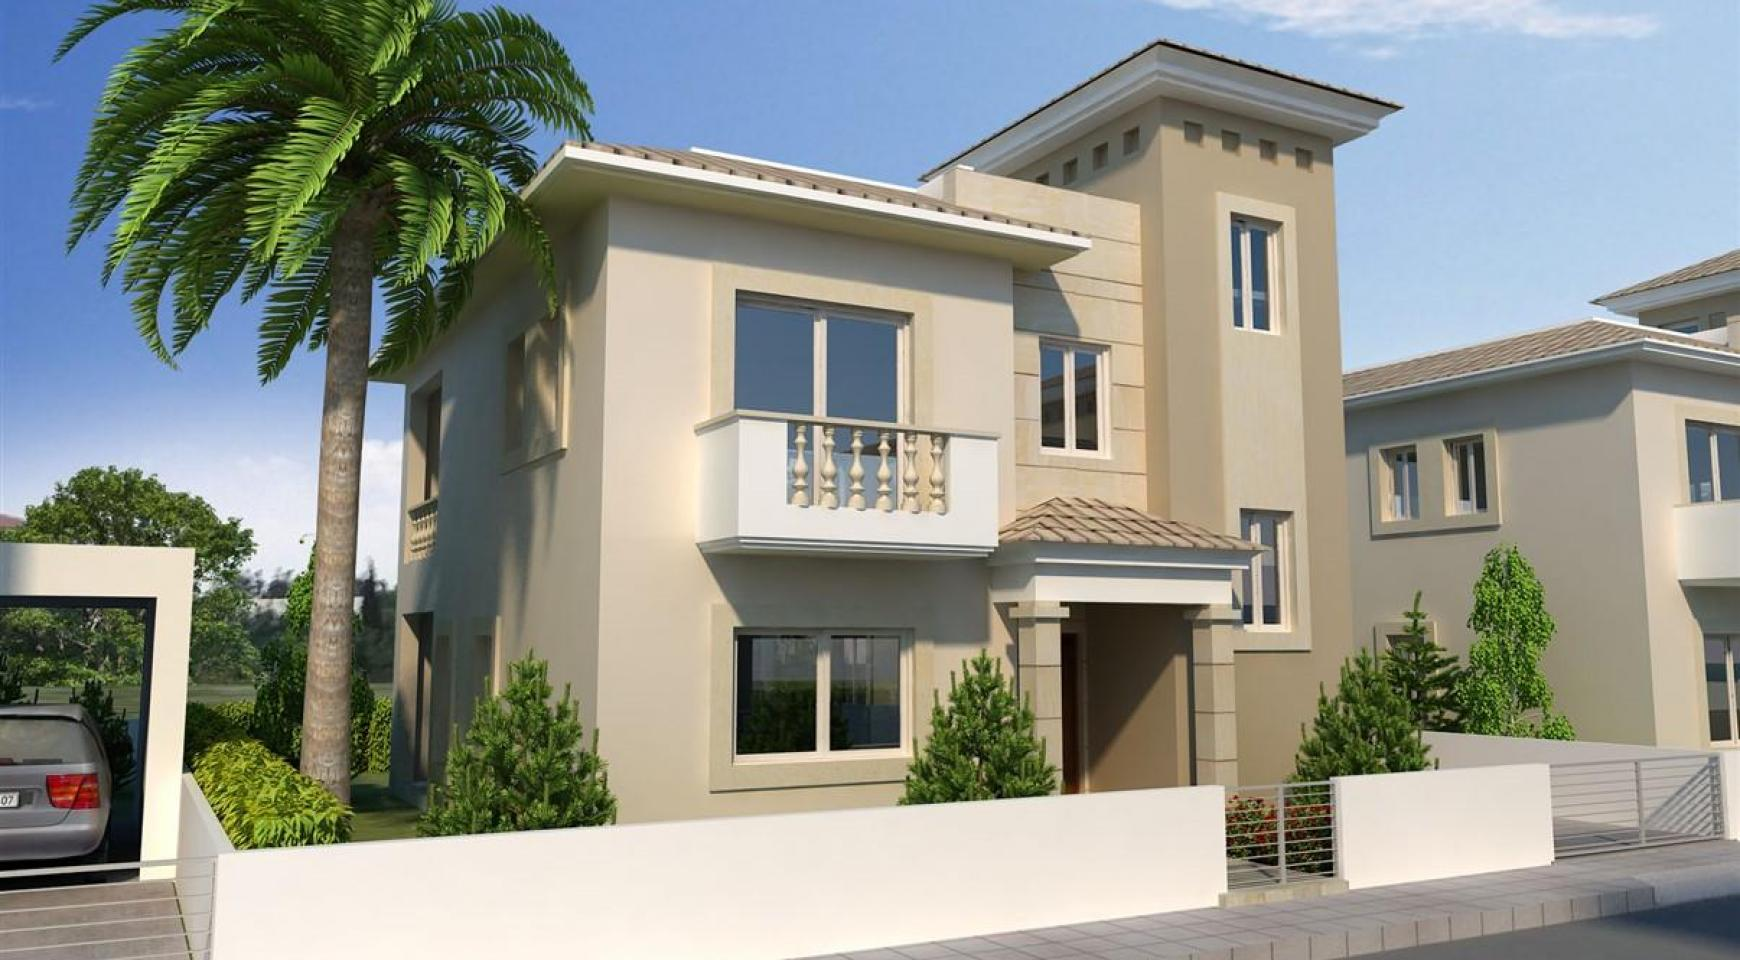 3 Bedroom Villa in a New Project - 17